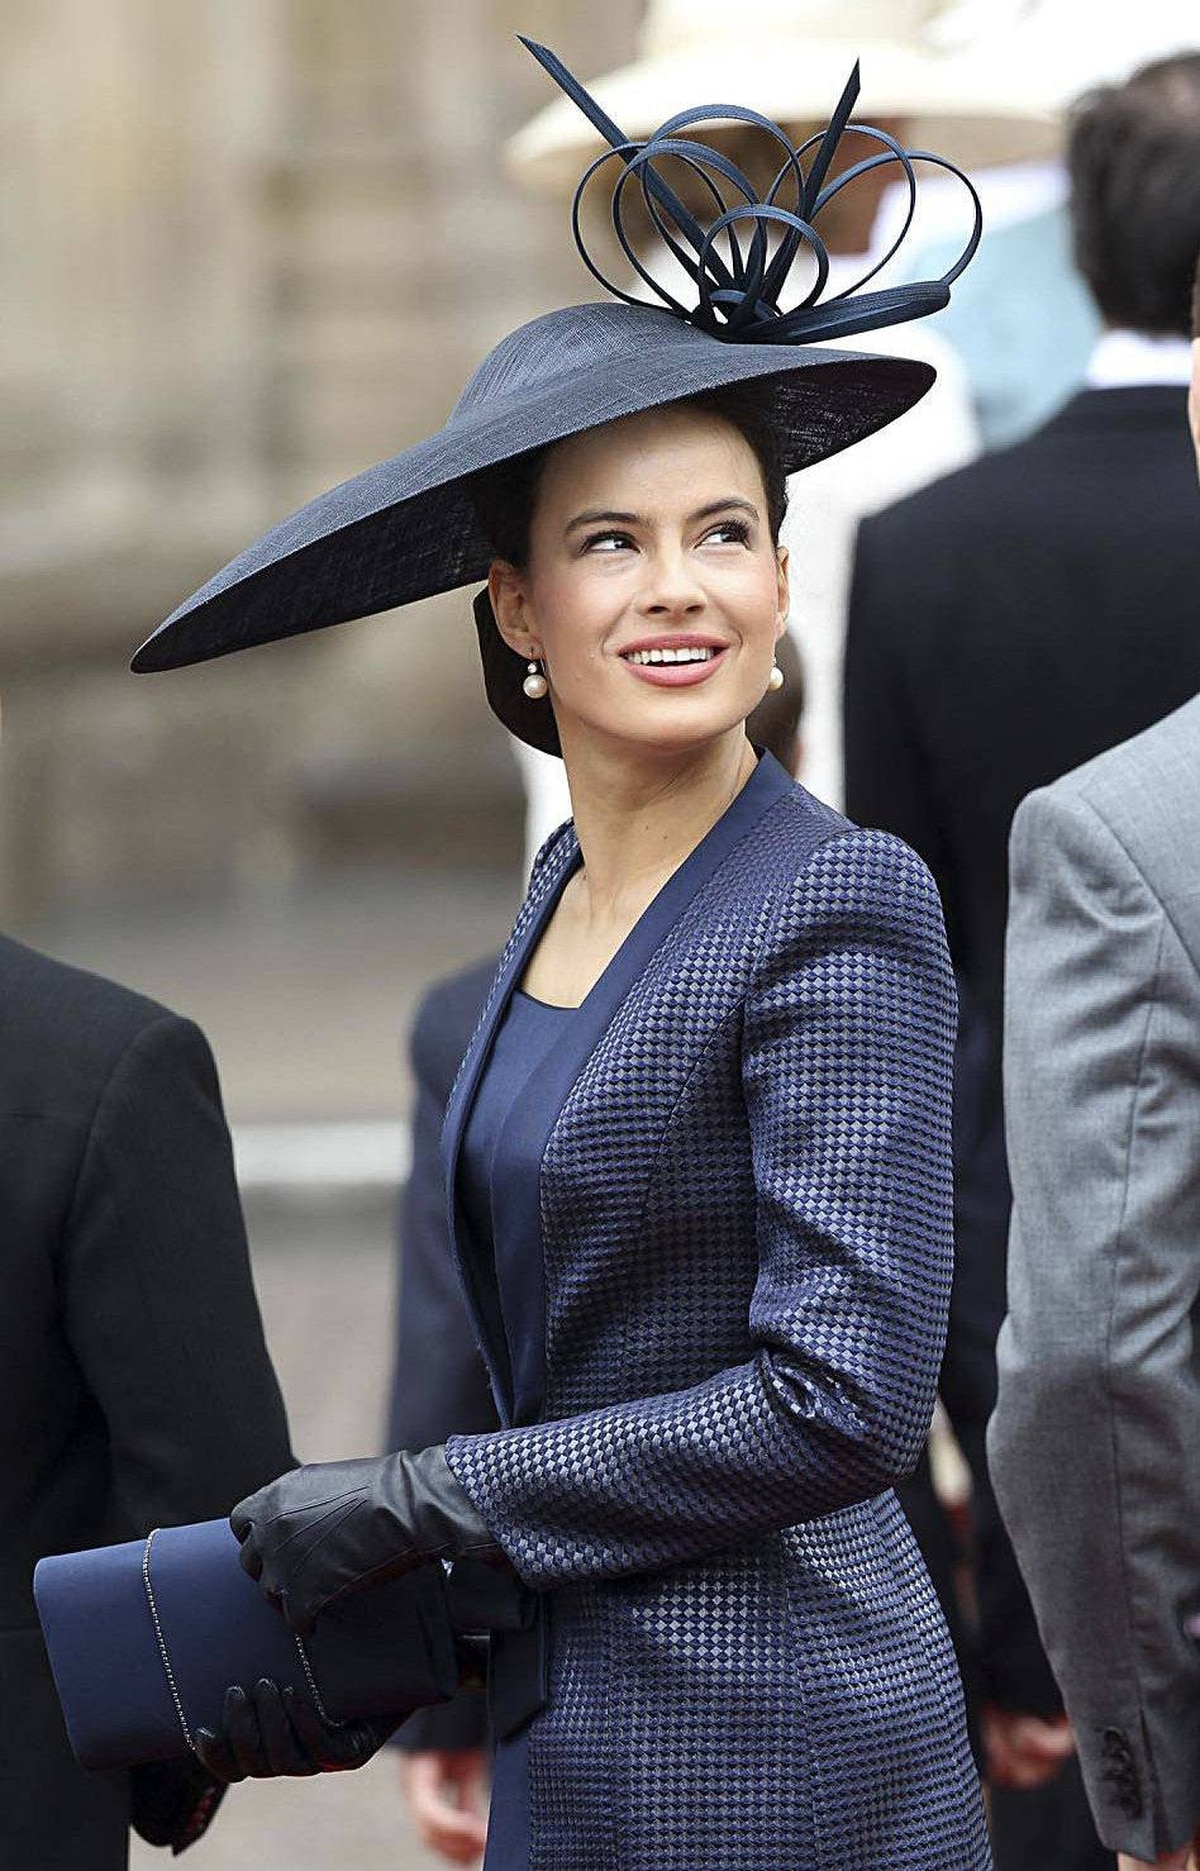 Sophie Winkleman, Lady Frederick Windsor arrives to attend the Royal Wedding of Prince William to Catherine Middleton at Westminster Abbey on April 29, 2011 in London, England.